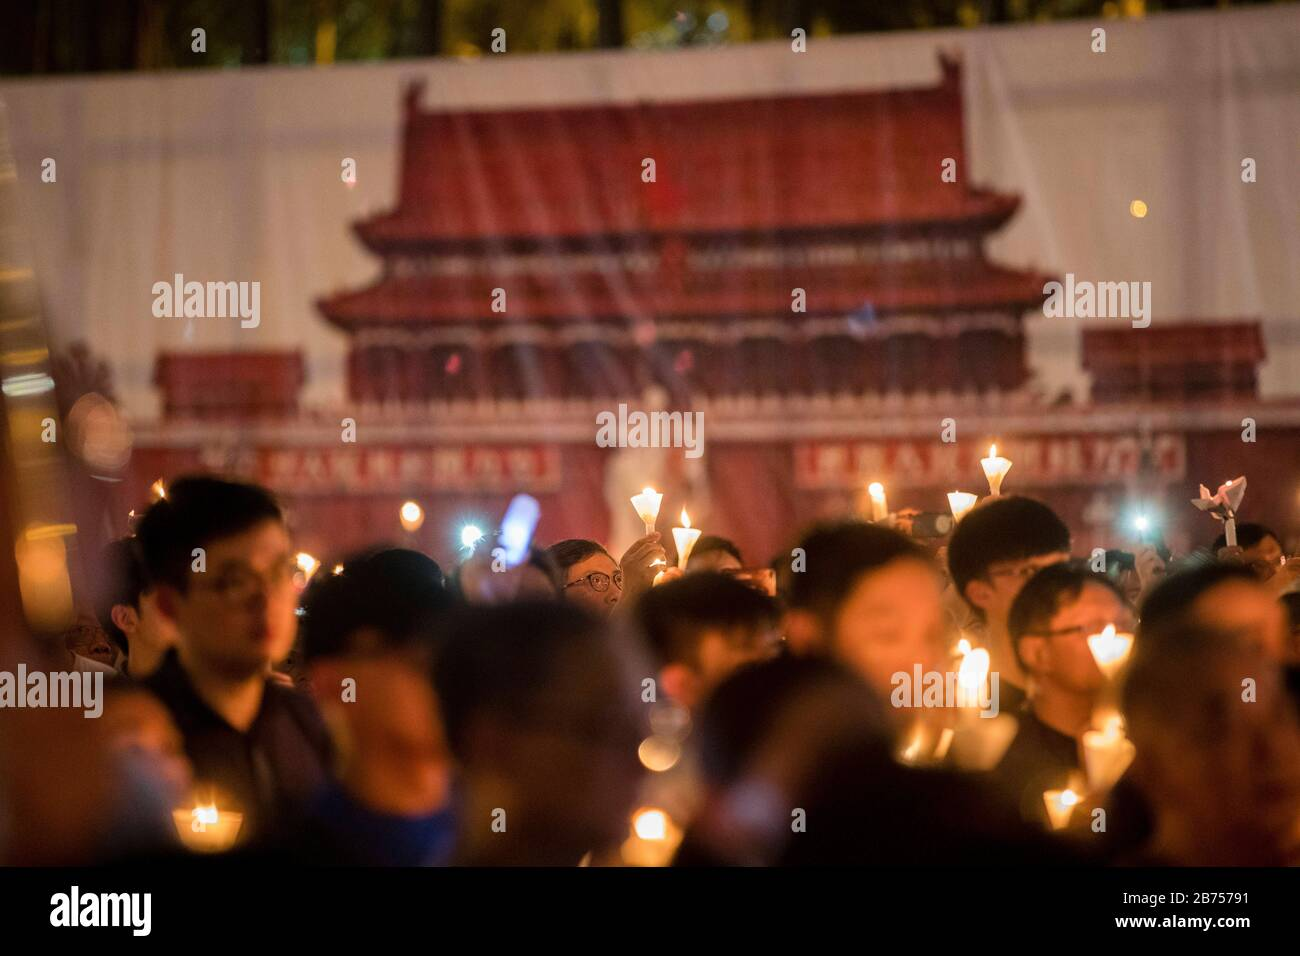 Participants attend the annual candlelit vigil commemorating the 30th anniversary of the 1989 Beijing Tiananmen Square massacre at Victoria Park In Hong Kong, China, 4 June 2019. Stock Photo